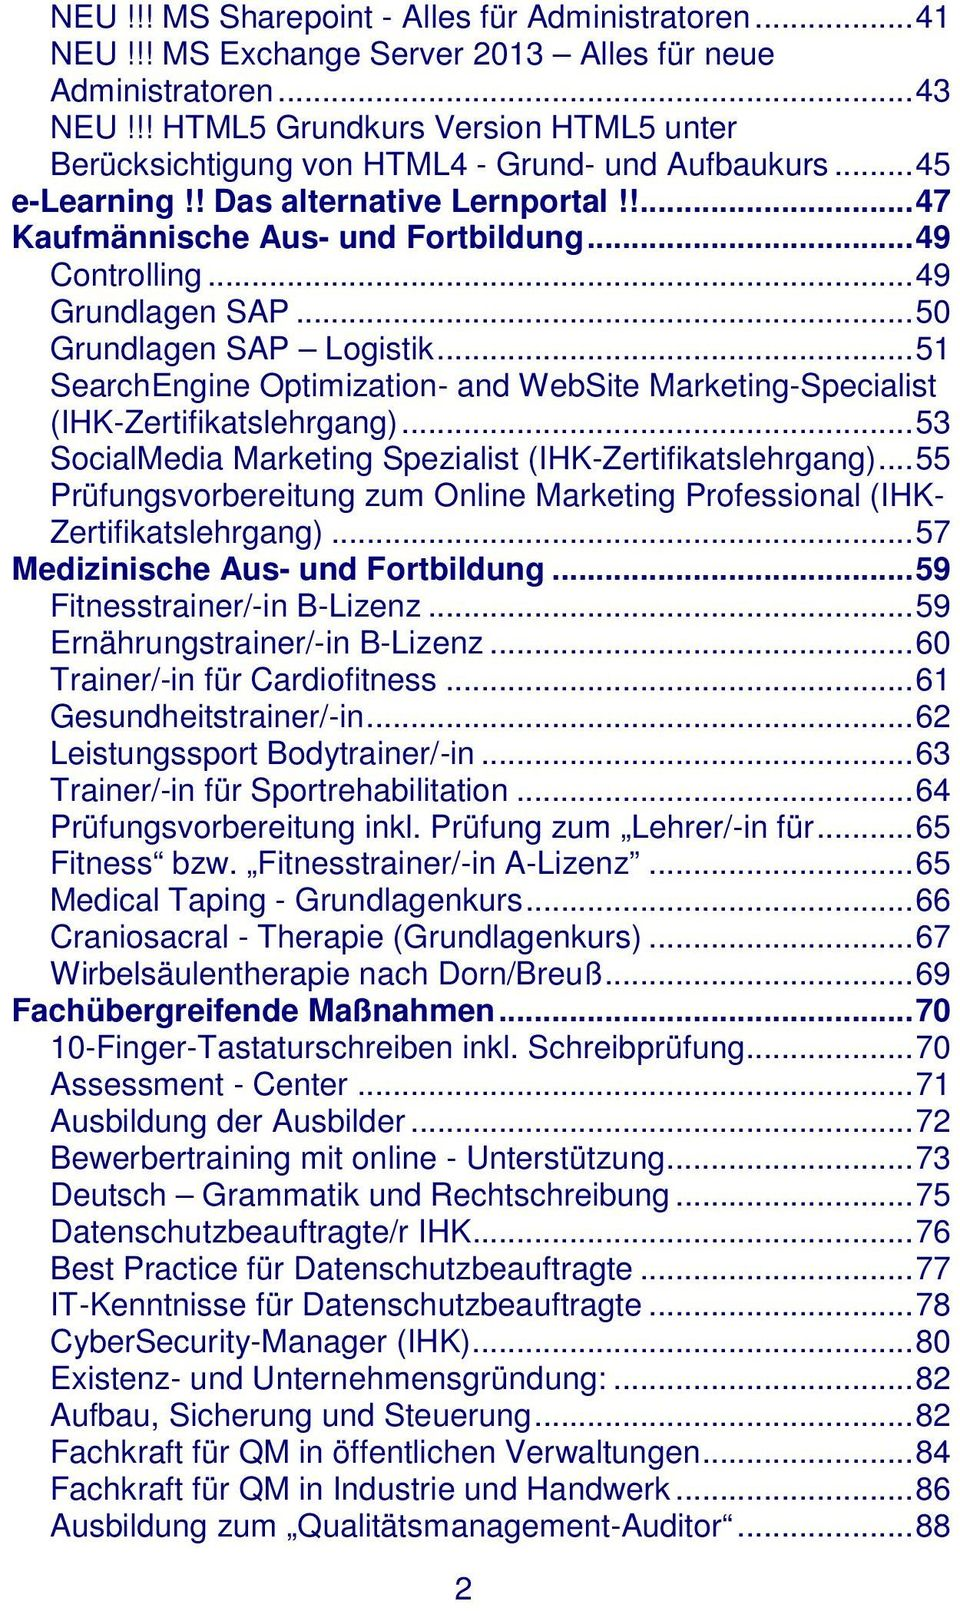 .. 49 Grundlagen SAP... 50 Grundlagen SAP Logistik... 51 SearchEngine Optimization- and WebSite Marketing-Specialist (IHK-Zertifikatslehrgang).